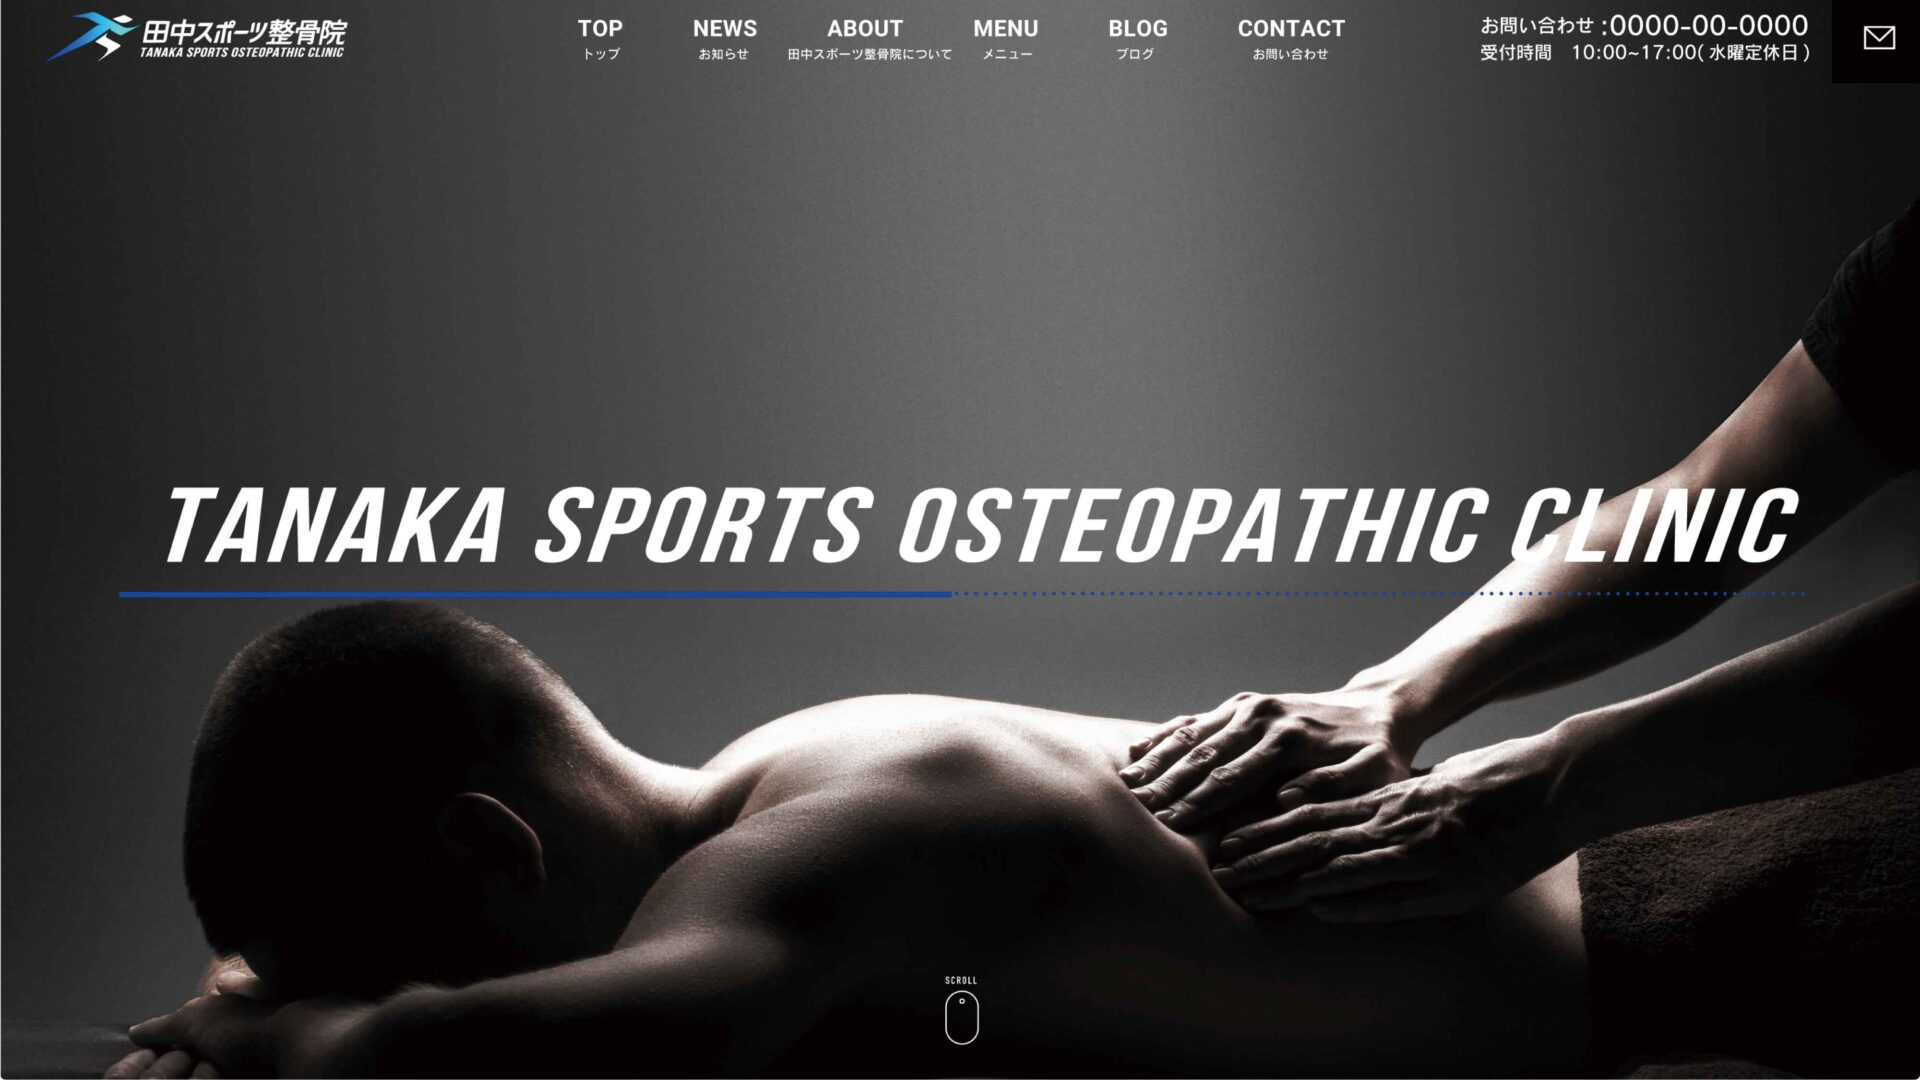 「TANAKA SPORTS OSTEOPATHIC CLINIC」のサムネイル画像